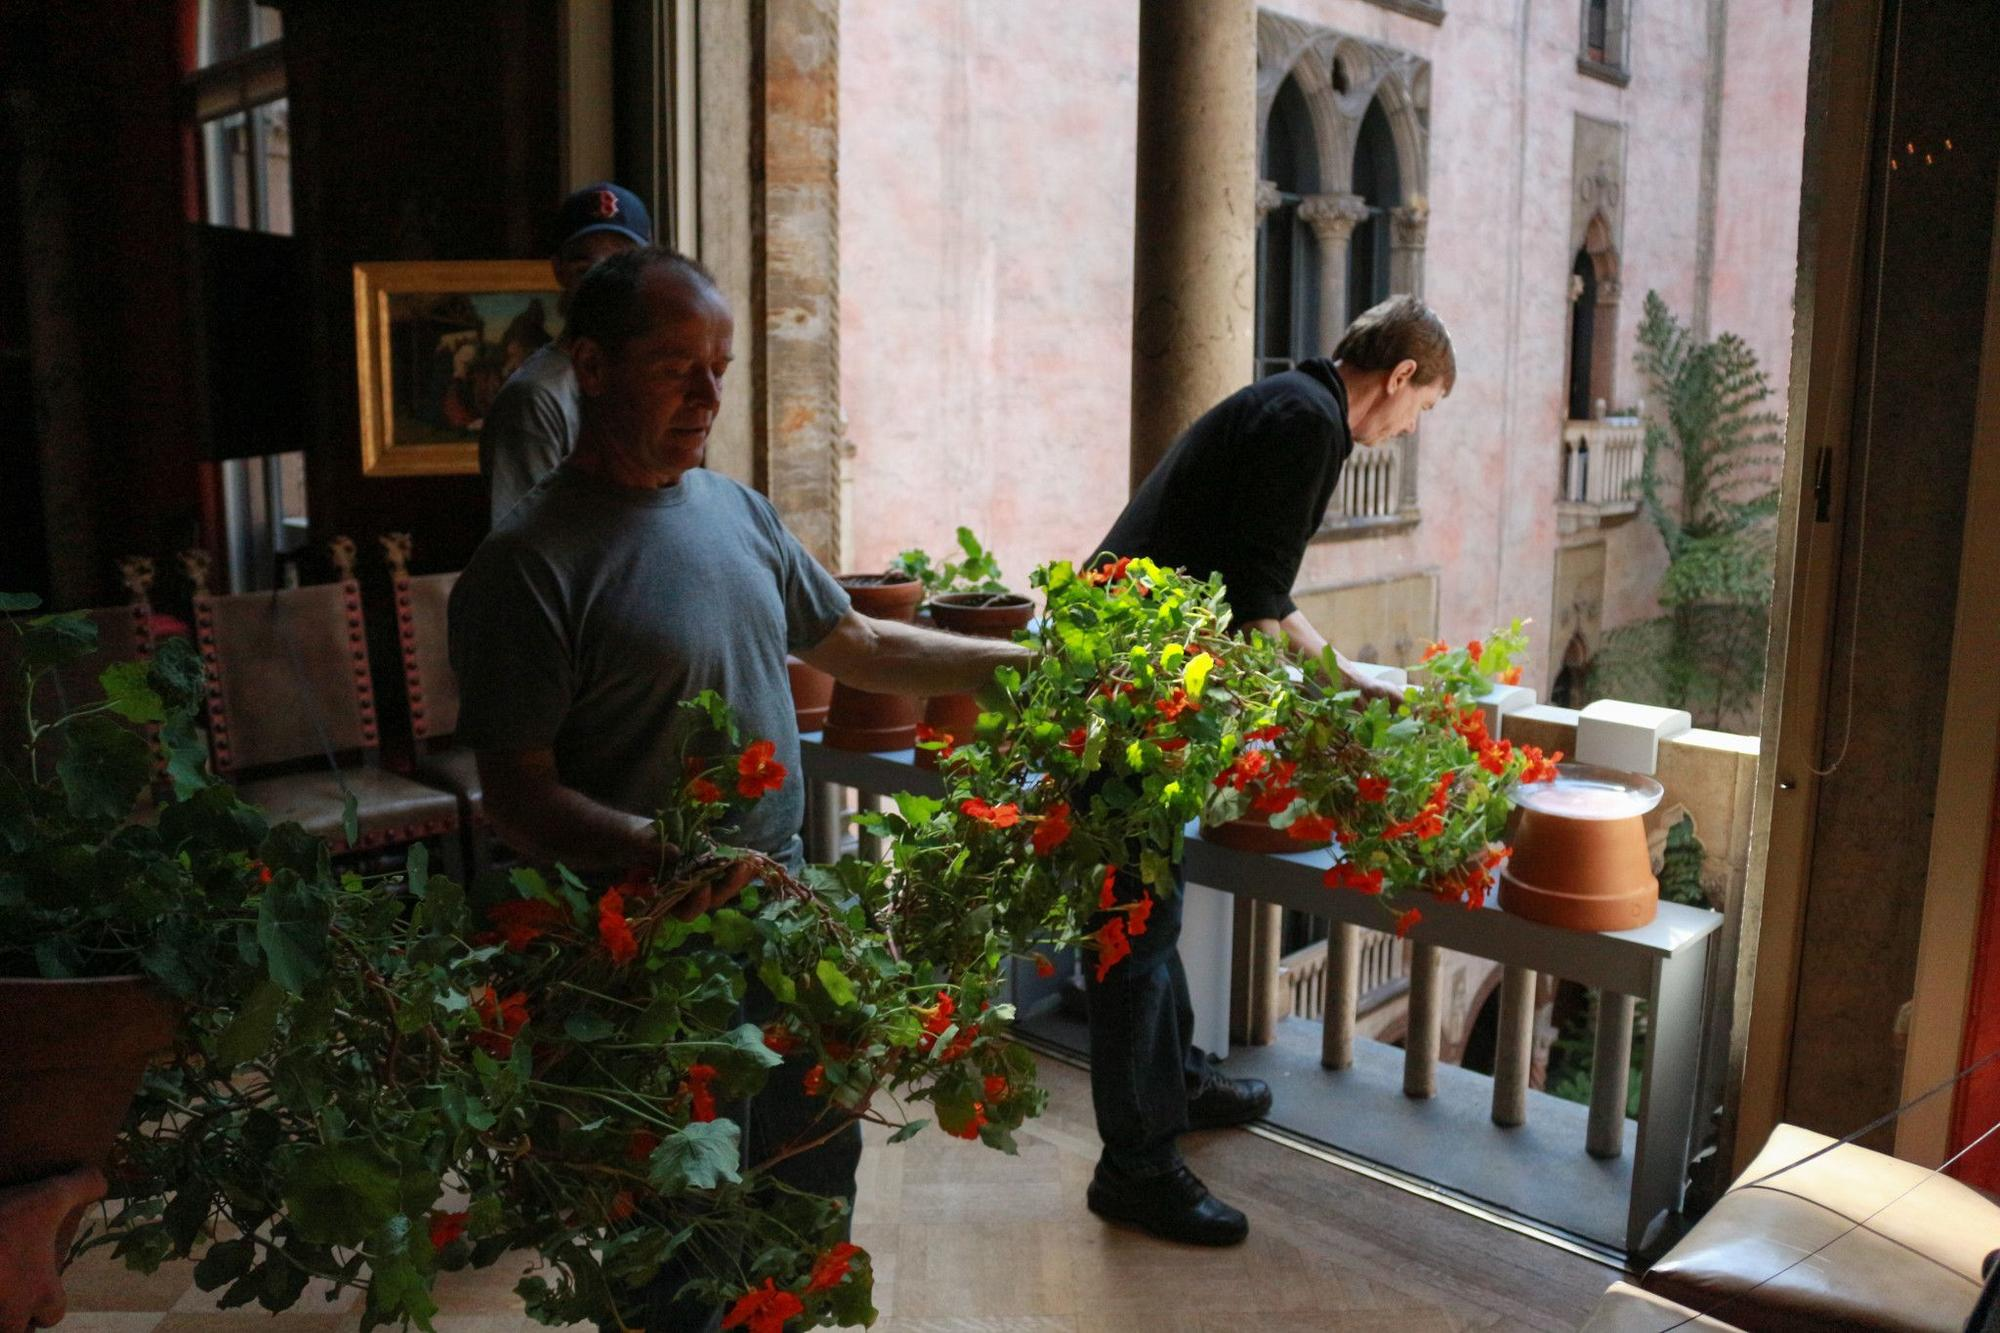 Former Chief Horticulturalist Stan Kozak prepares to guide the nasturtiums down through the Courtyard, to achieve their iconic hanging display.